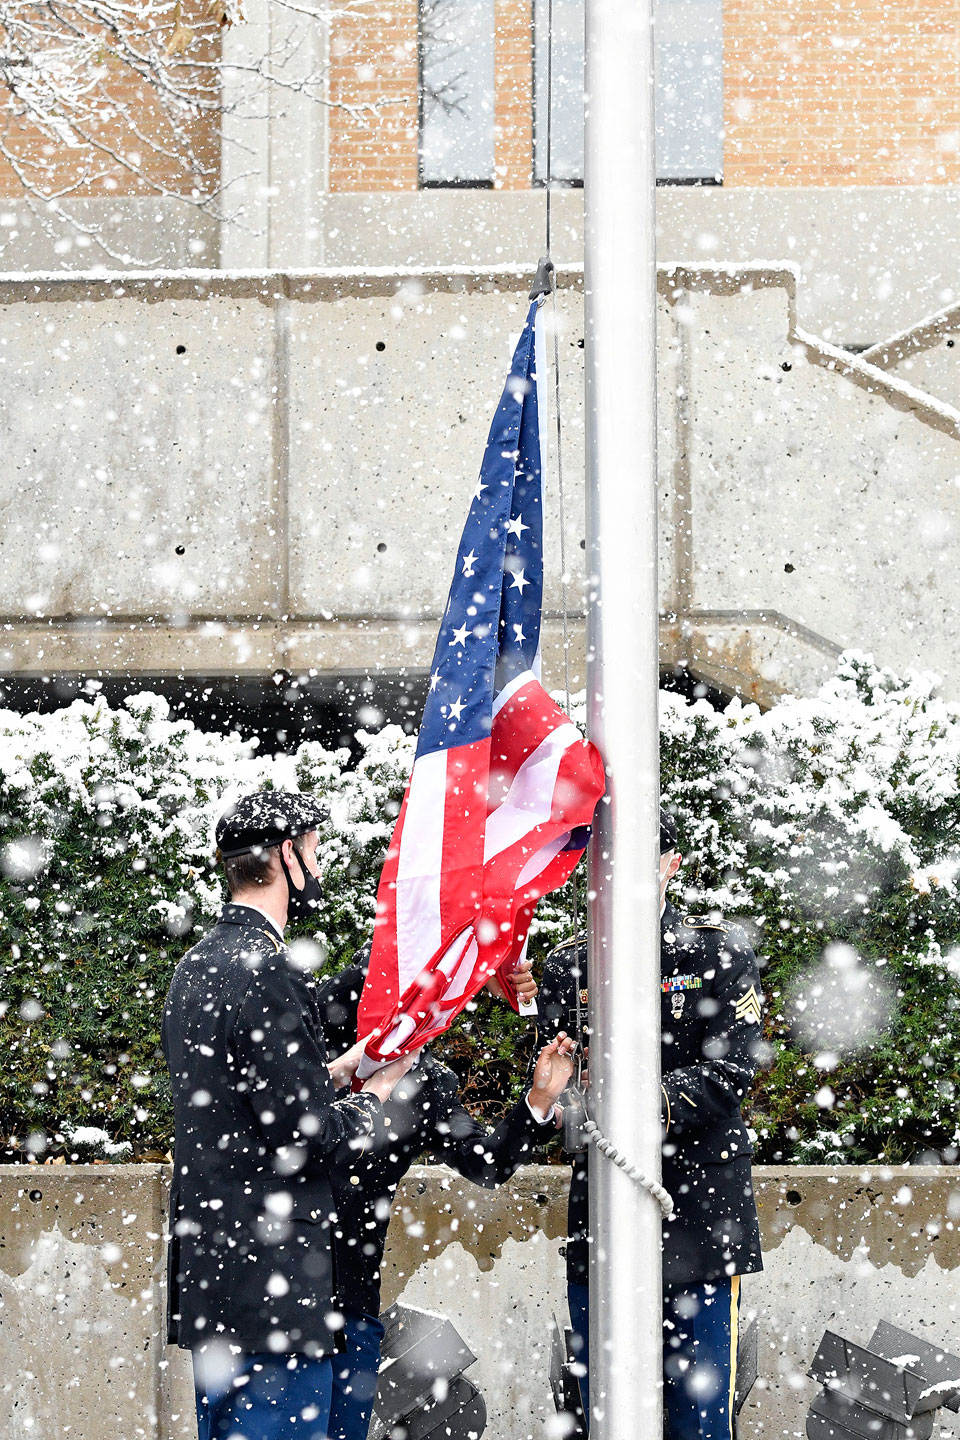 Raising a new American flag in the snow